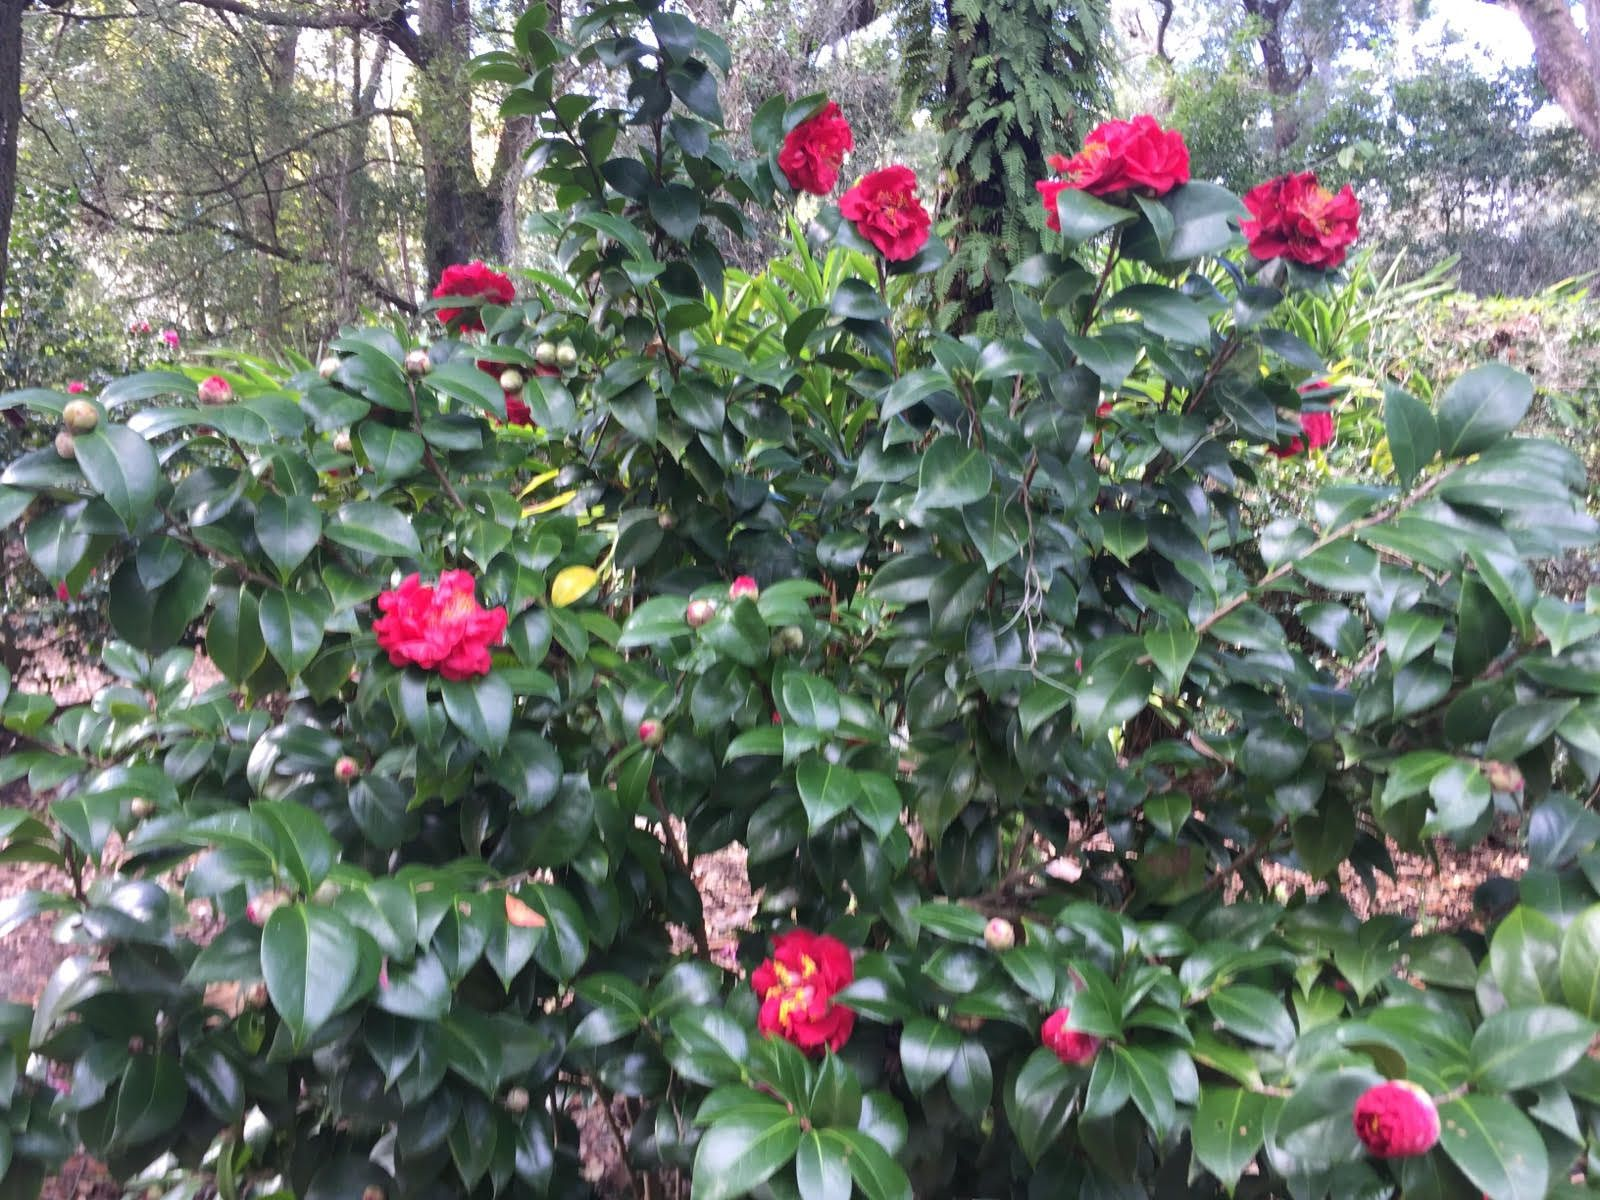 Hardy Camellia Plants Growing Camellias In Zone 6 Gardens Plants Camellia Plant Charleston Gardens